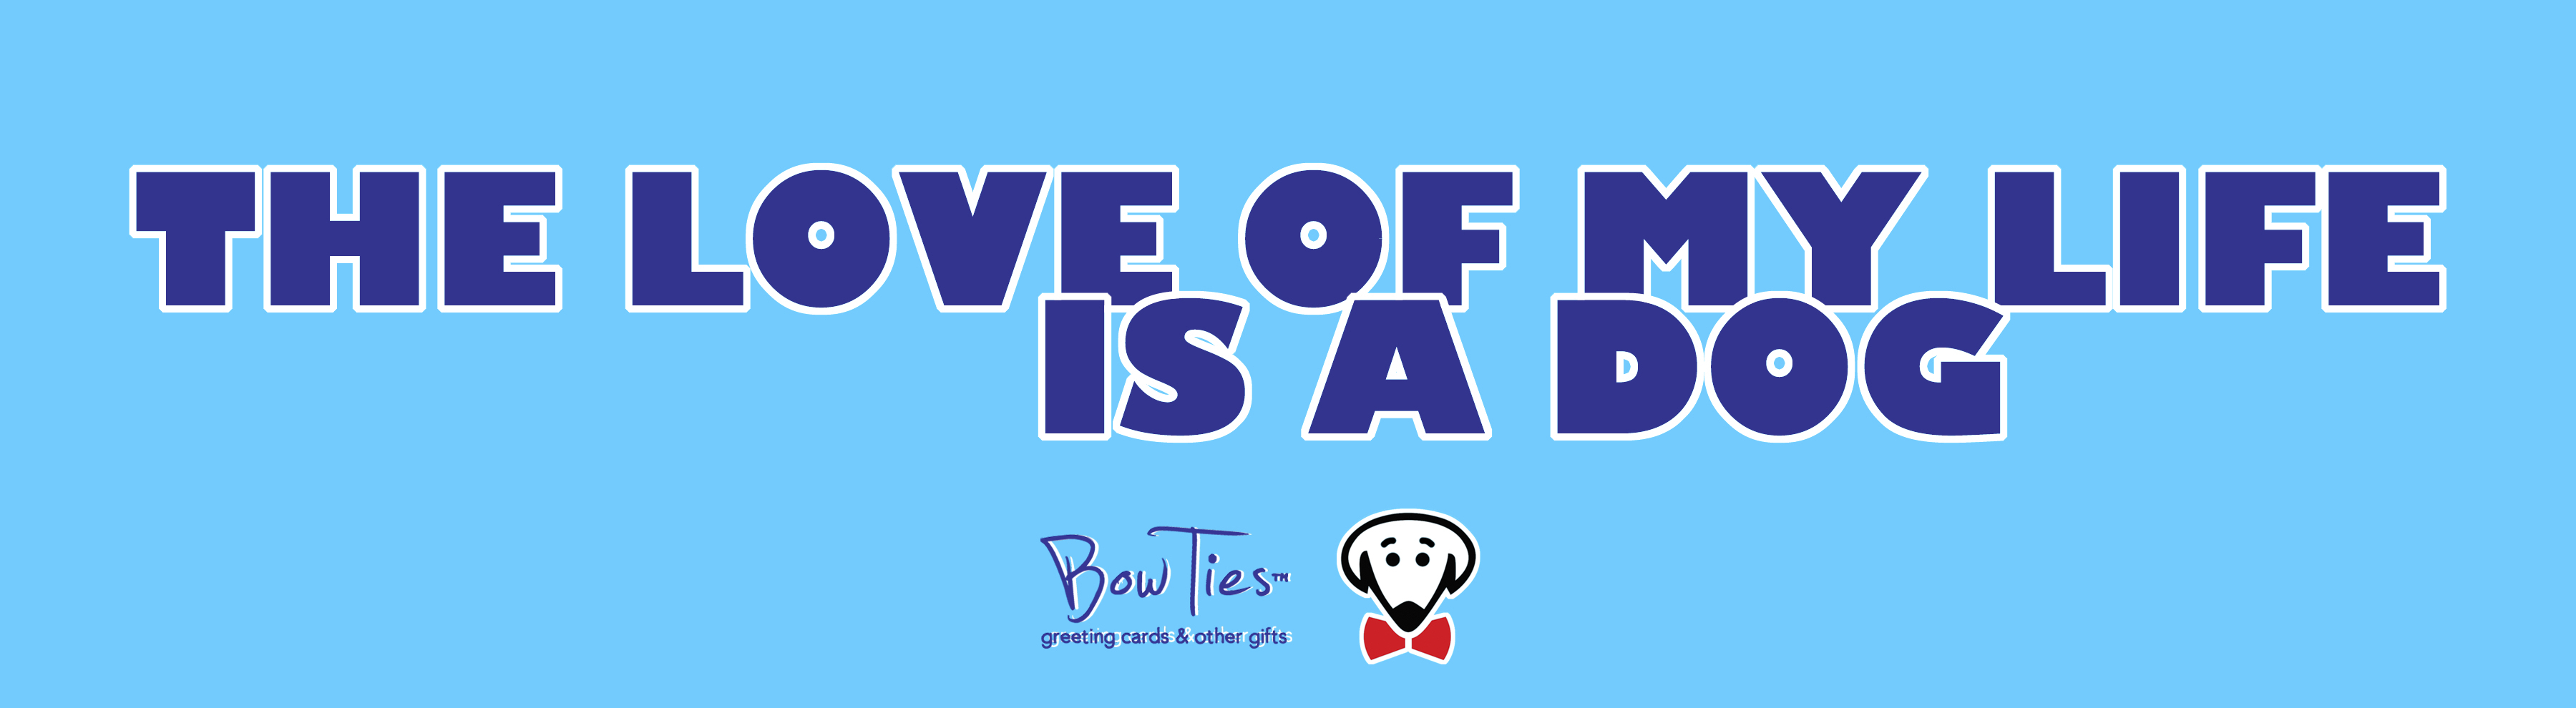 The love of my life is a dog – sticker